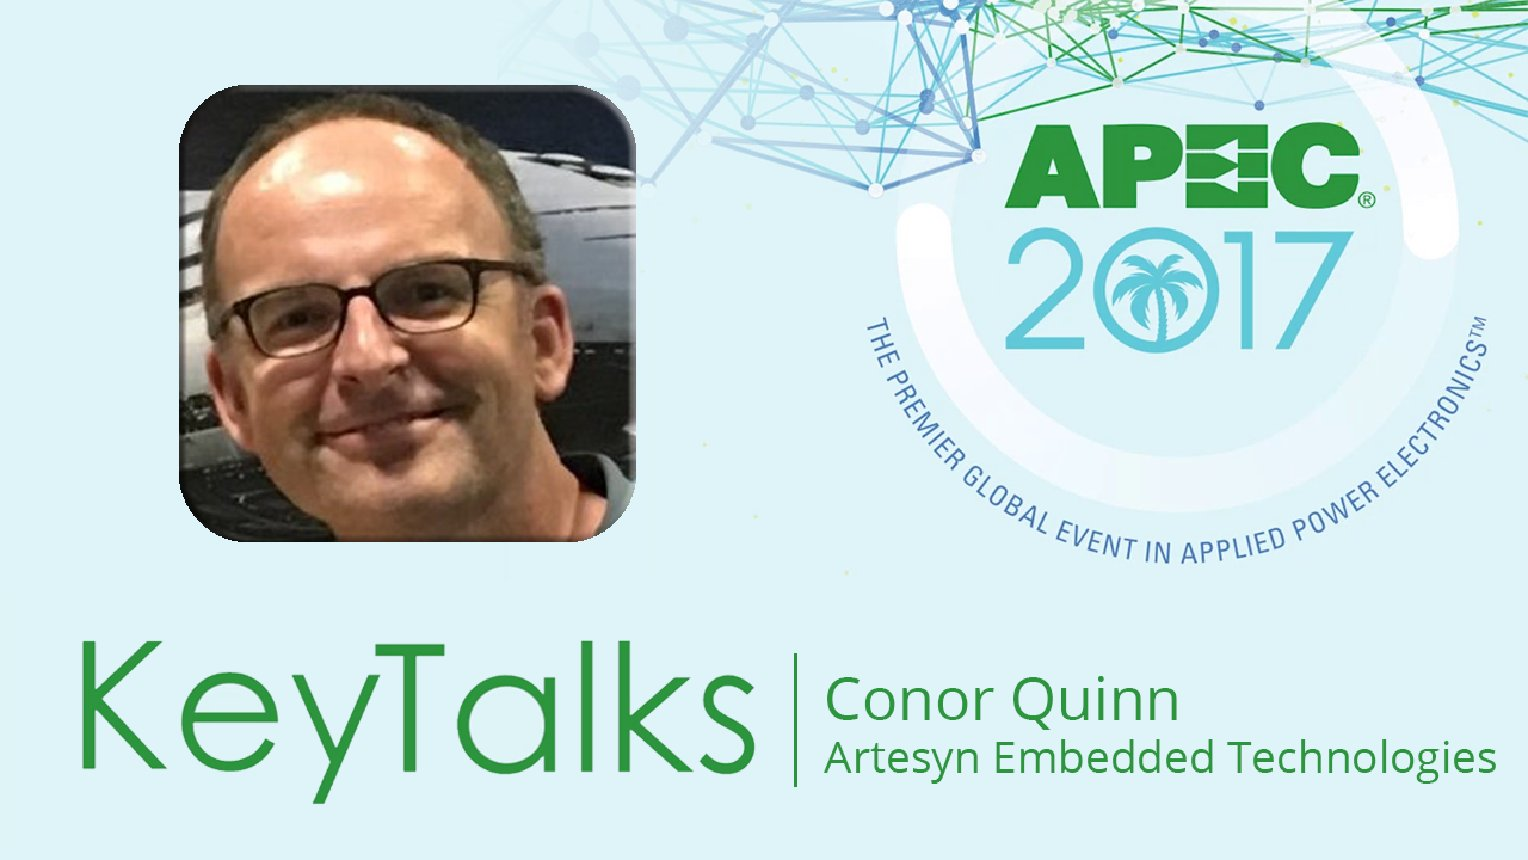 KeyTalk with Conor Quinn: Empowering the Electronics Industry - A Power Technology Roadmap - APEC 2017